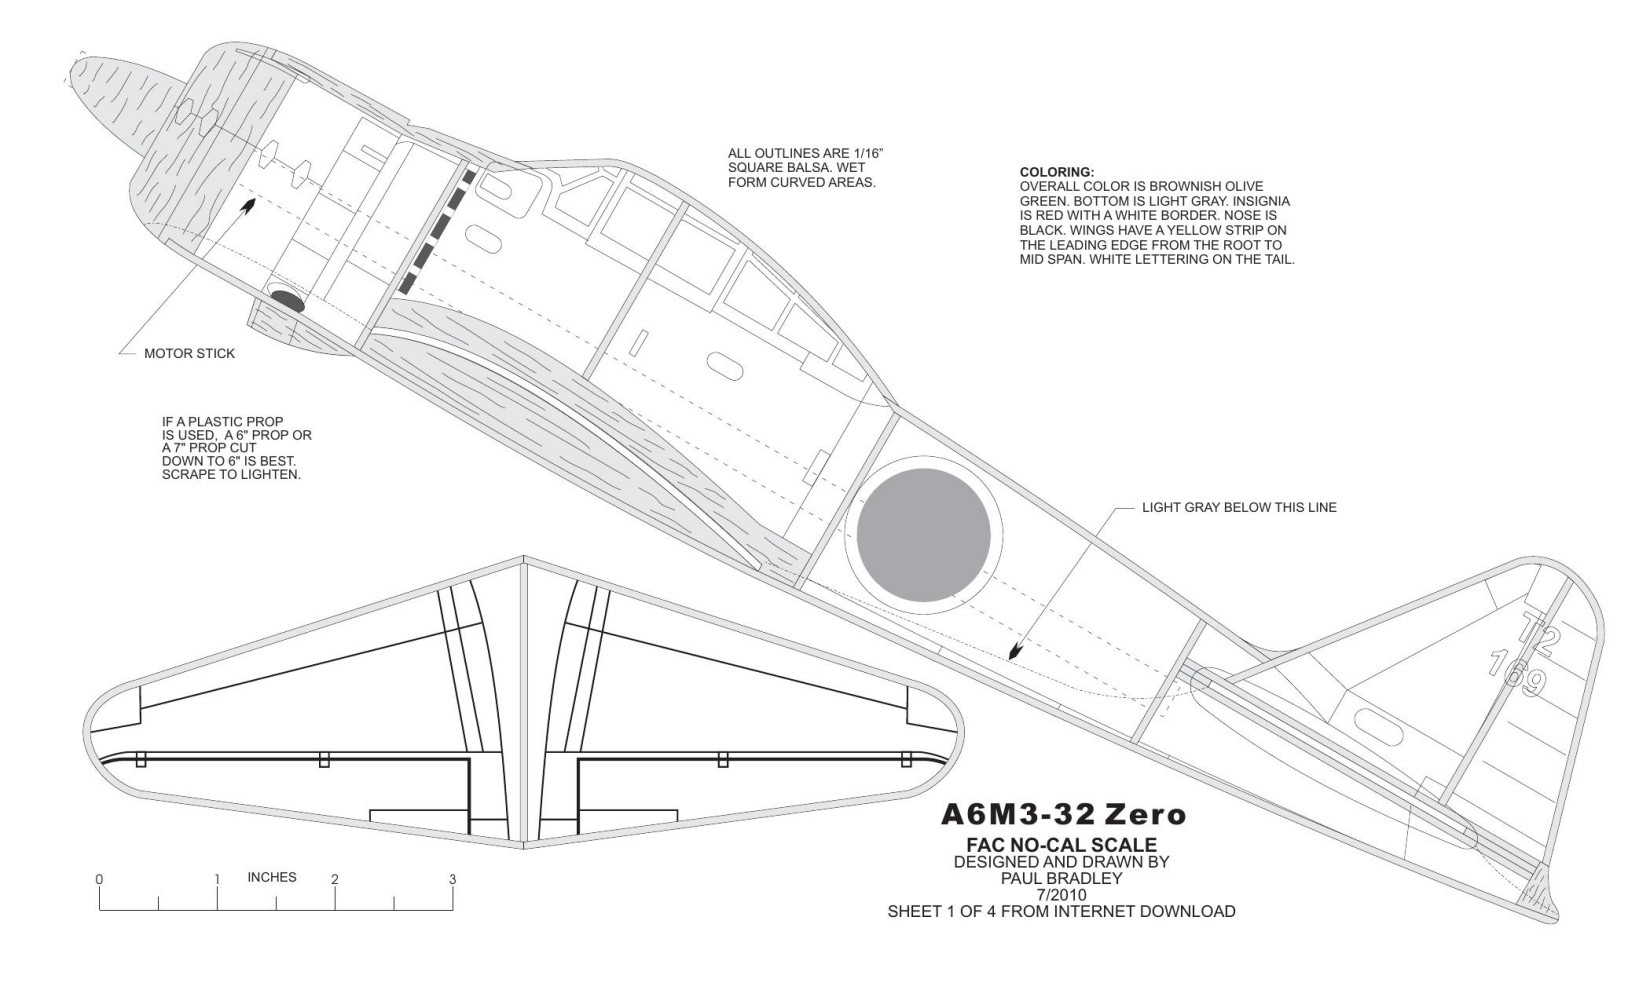 A6M3-32 Zero model airplane plan